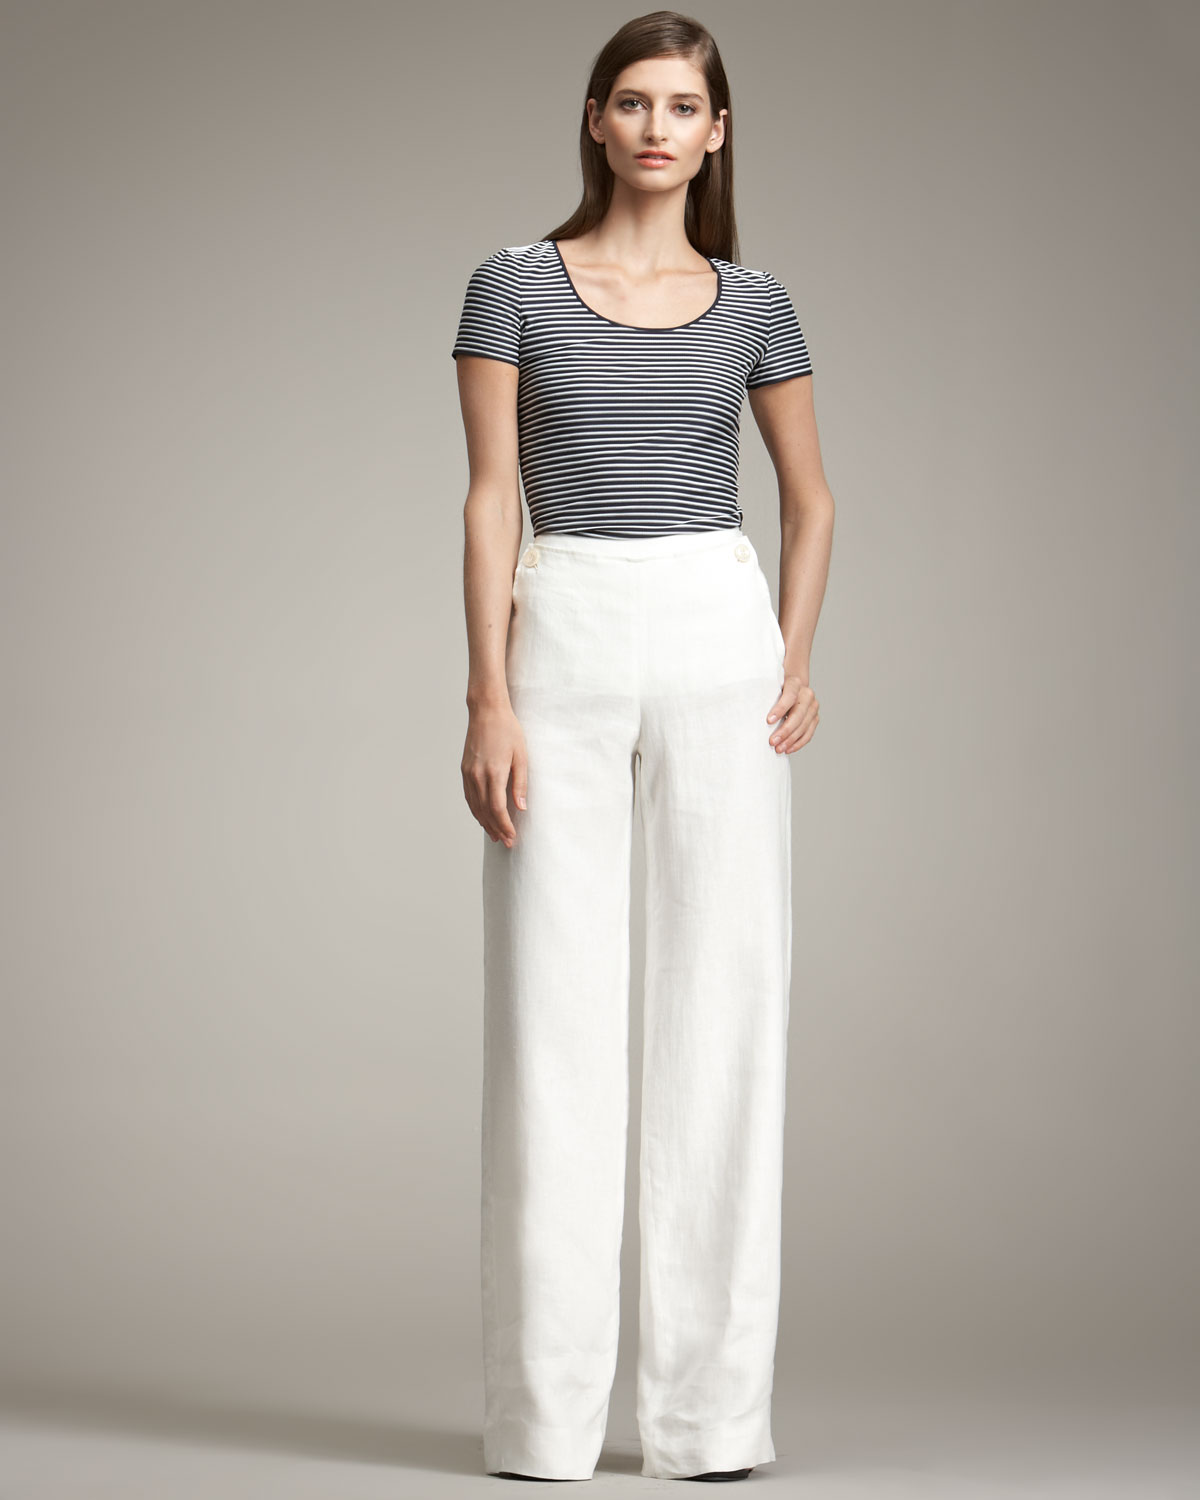 Armani Wideleg Sailor Pants in White | Lyst